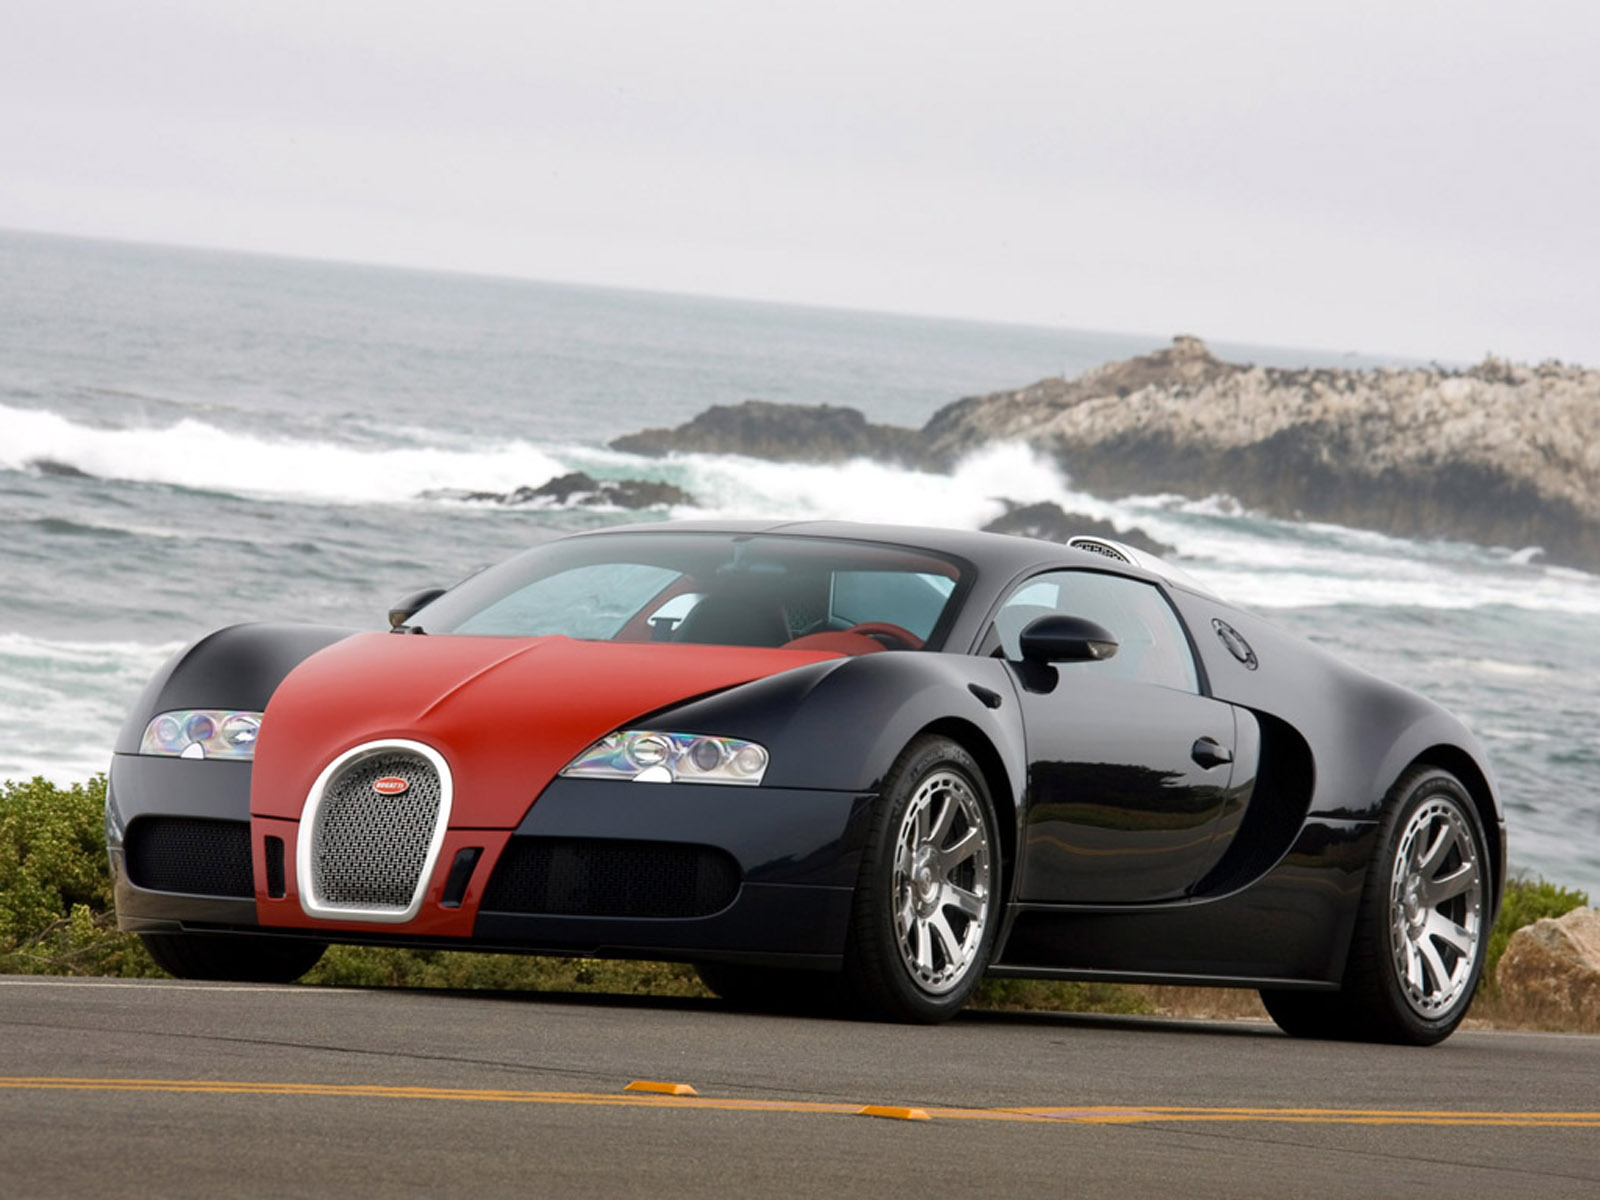 New Bugatti Veyron - World's